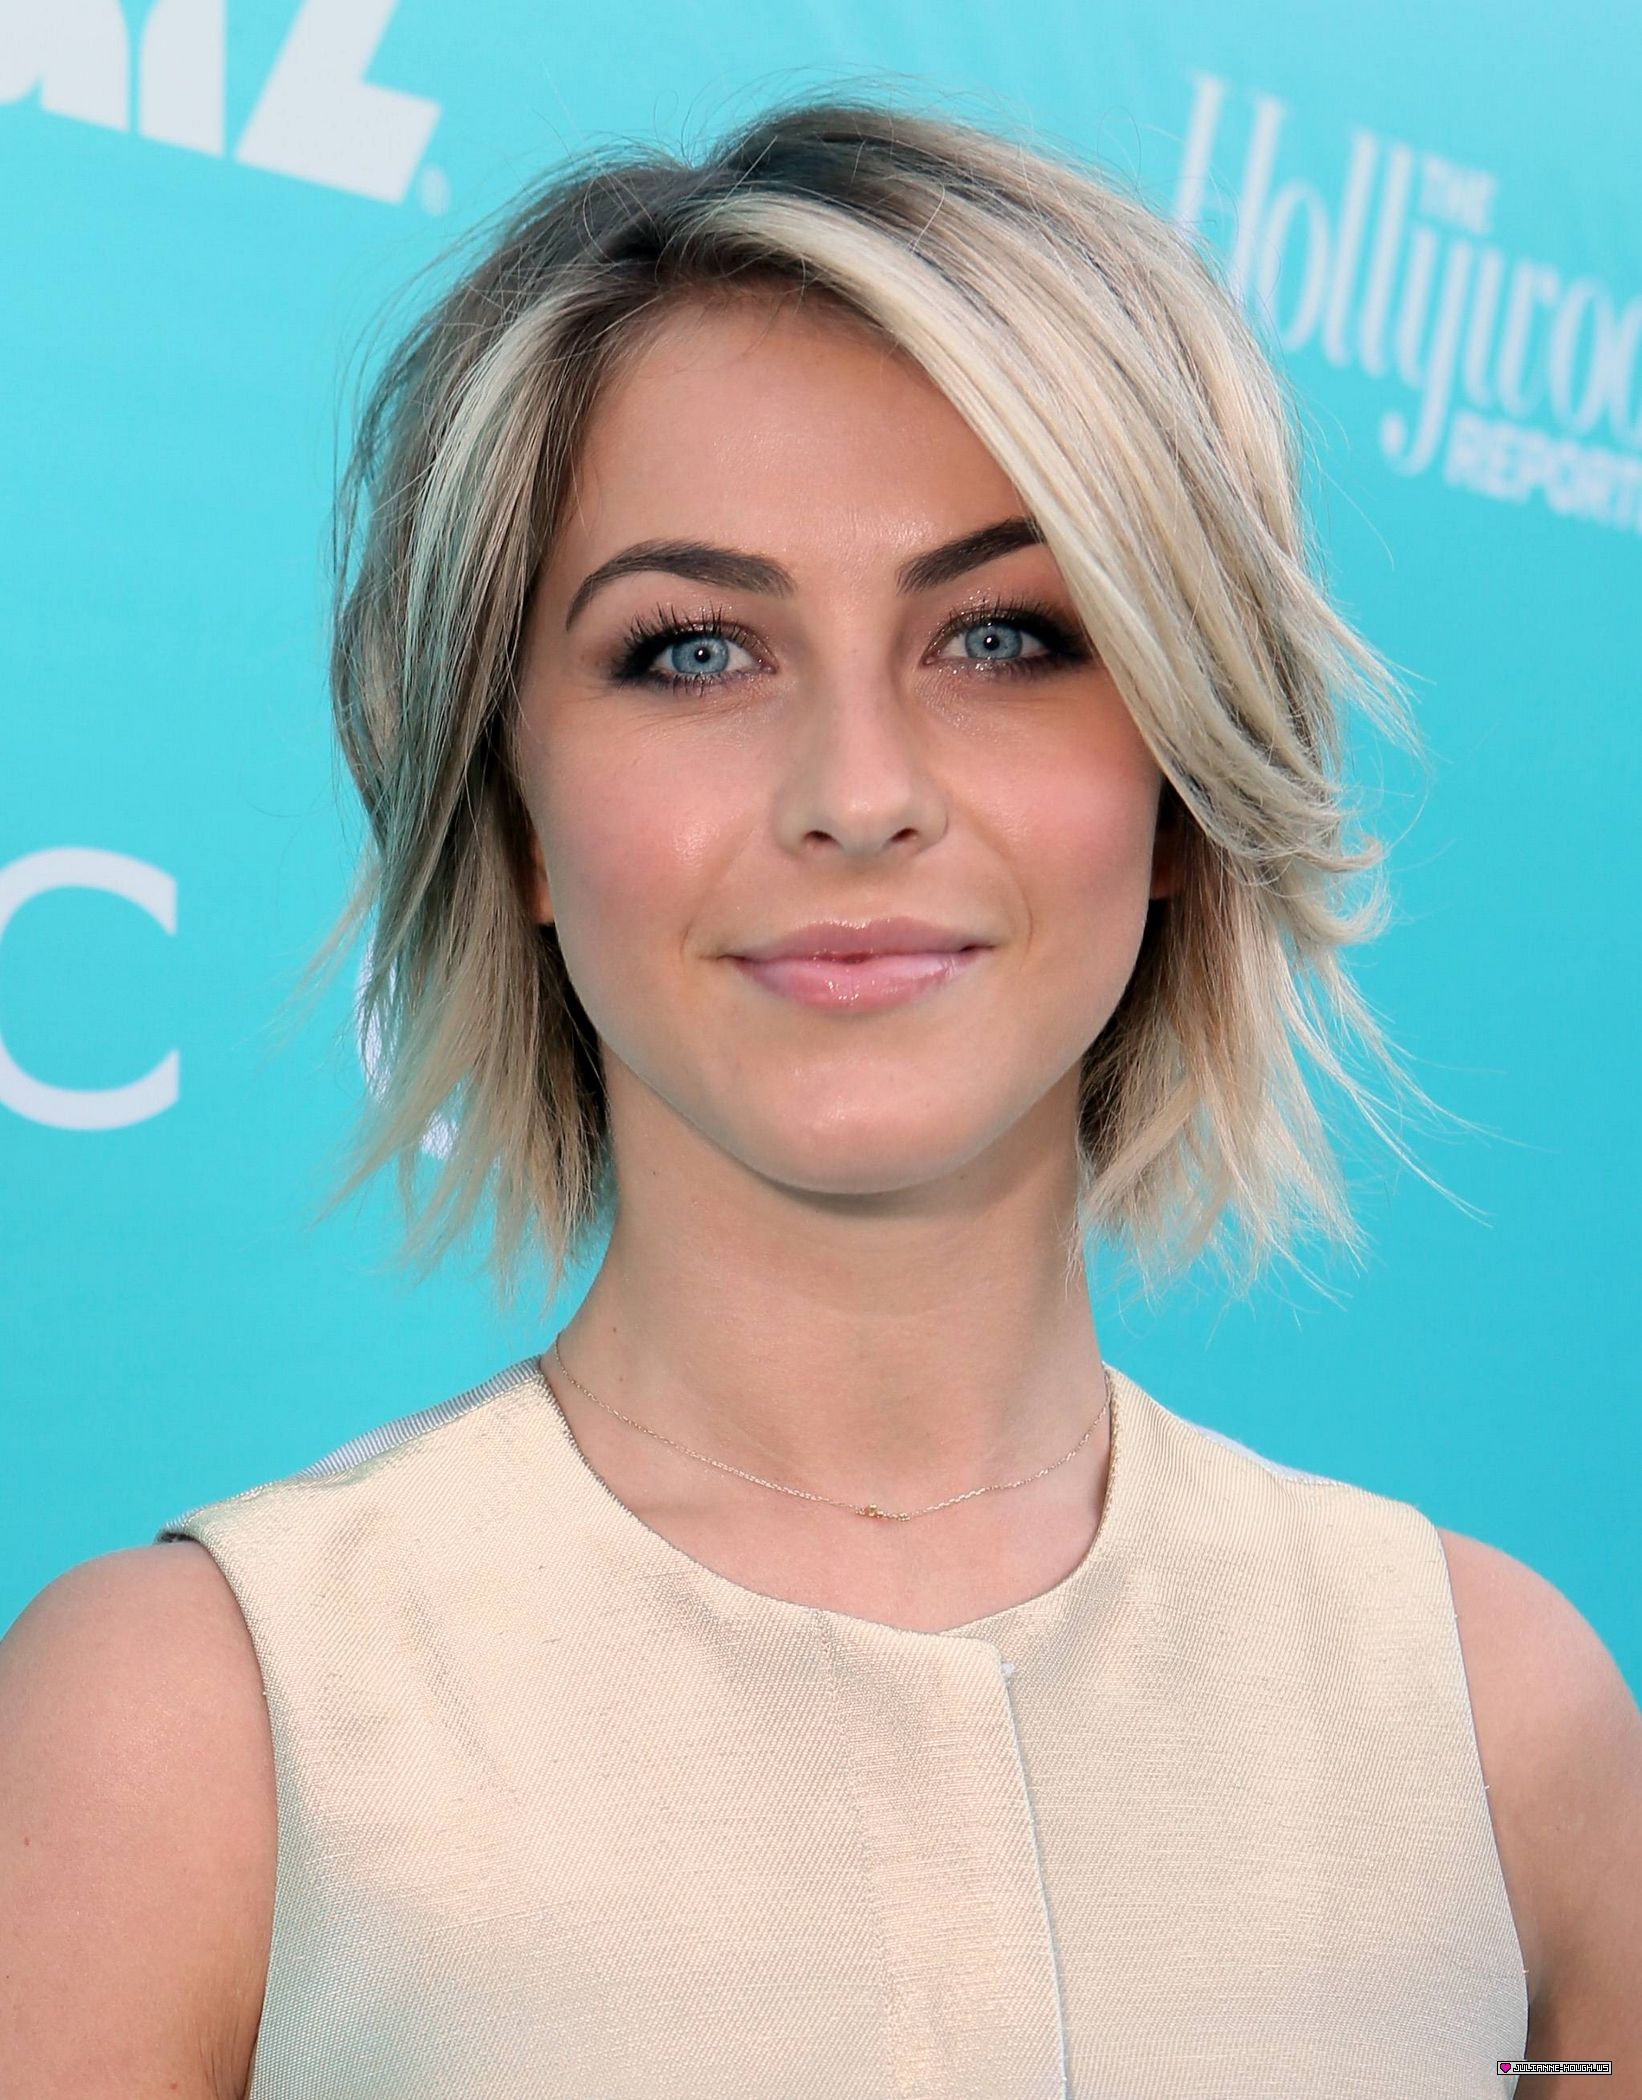 Julianne Hough Stunning Makeup Love The Textured Bob Hair